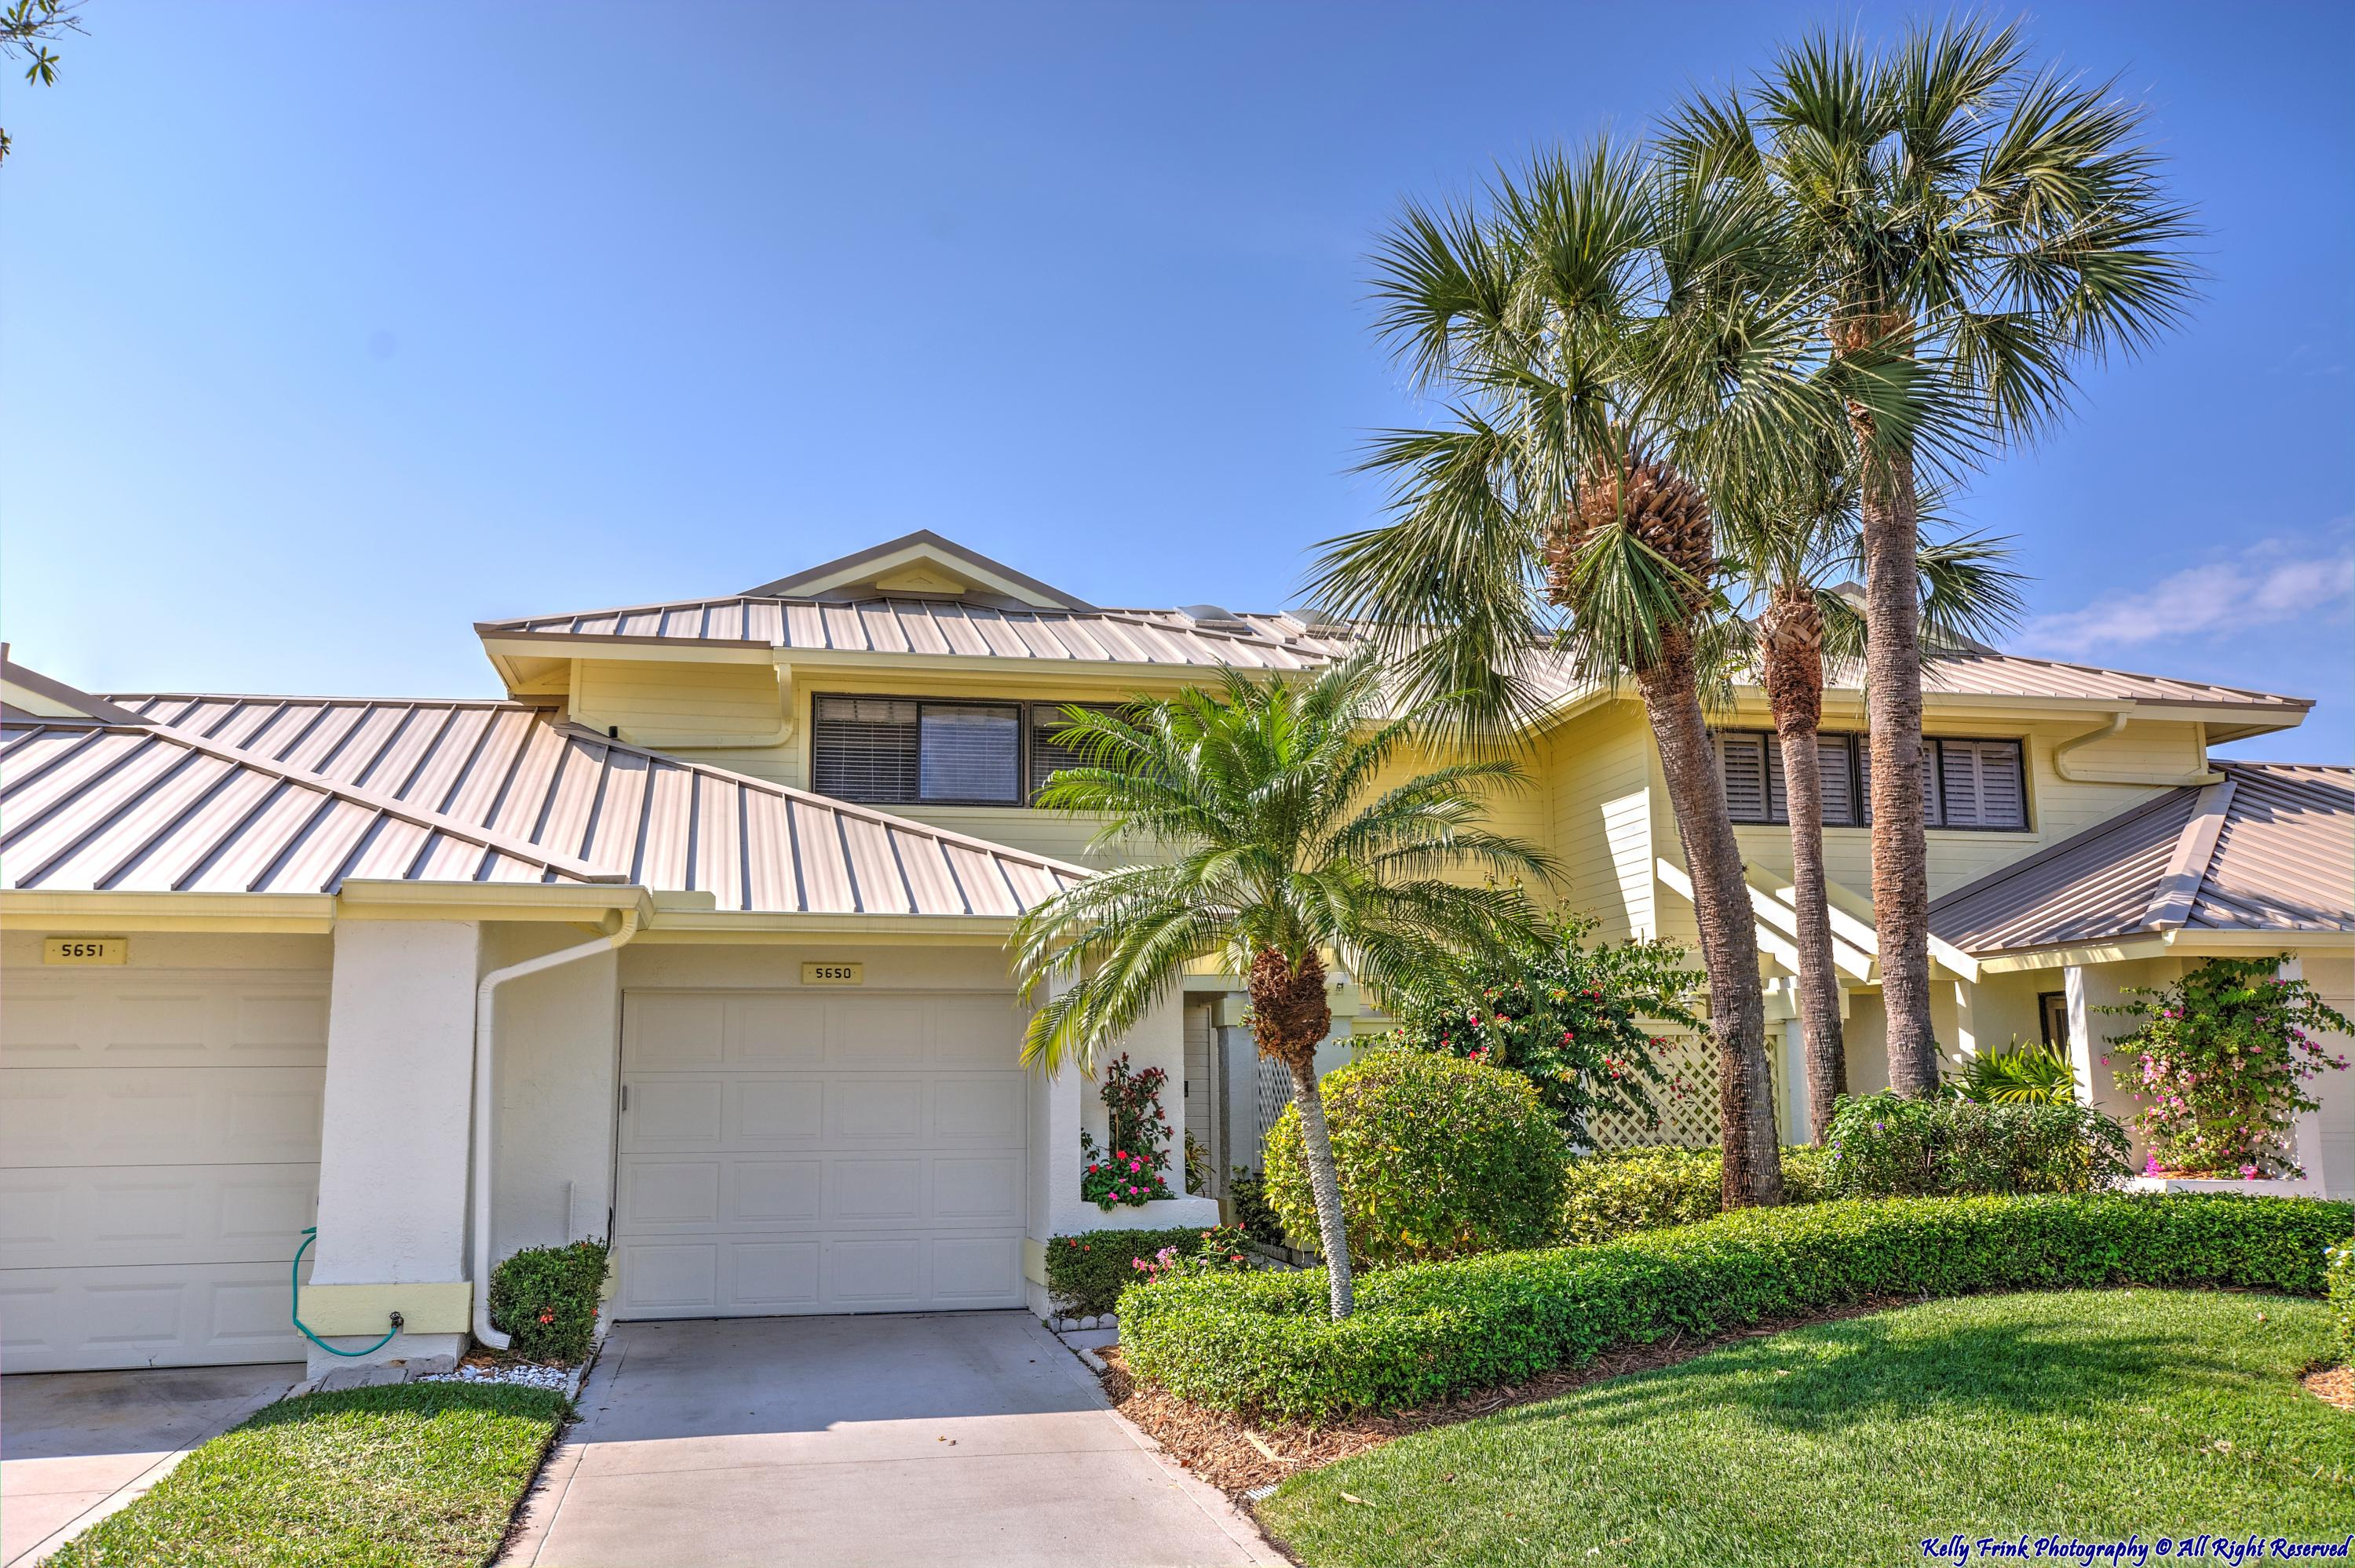 5650 Foxcross Place, Stuart, Florida 34997, 3 Bedrooms Bedrooms, ,2.1 BathroomsBathrooms,A,Townhouse,Foxcross,RX-10518856